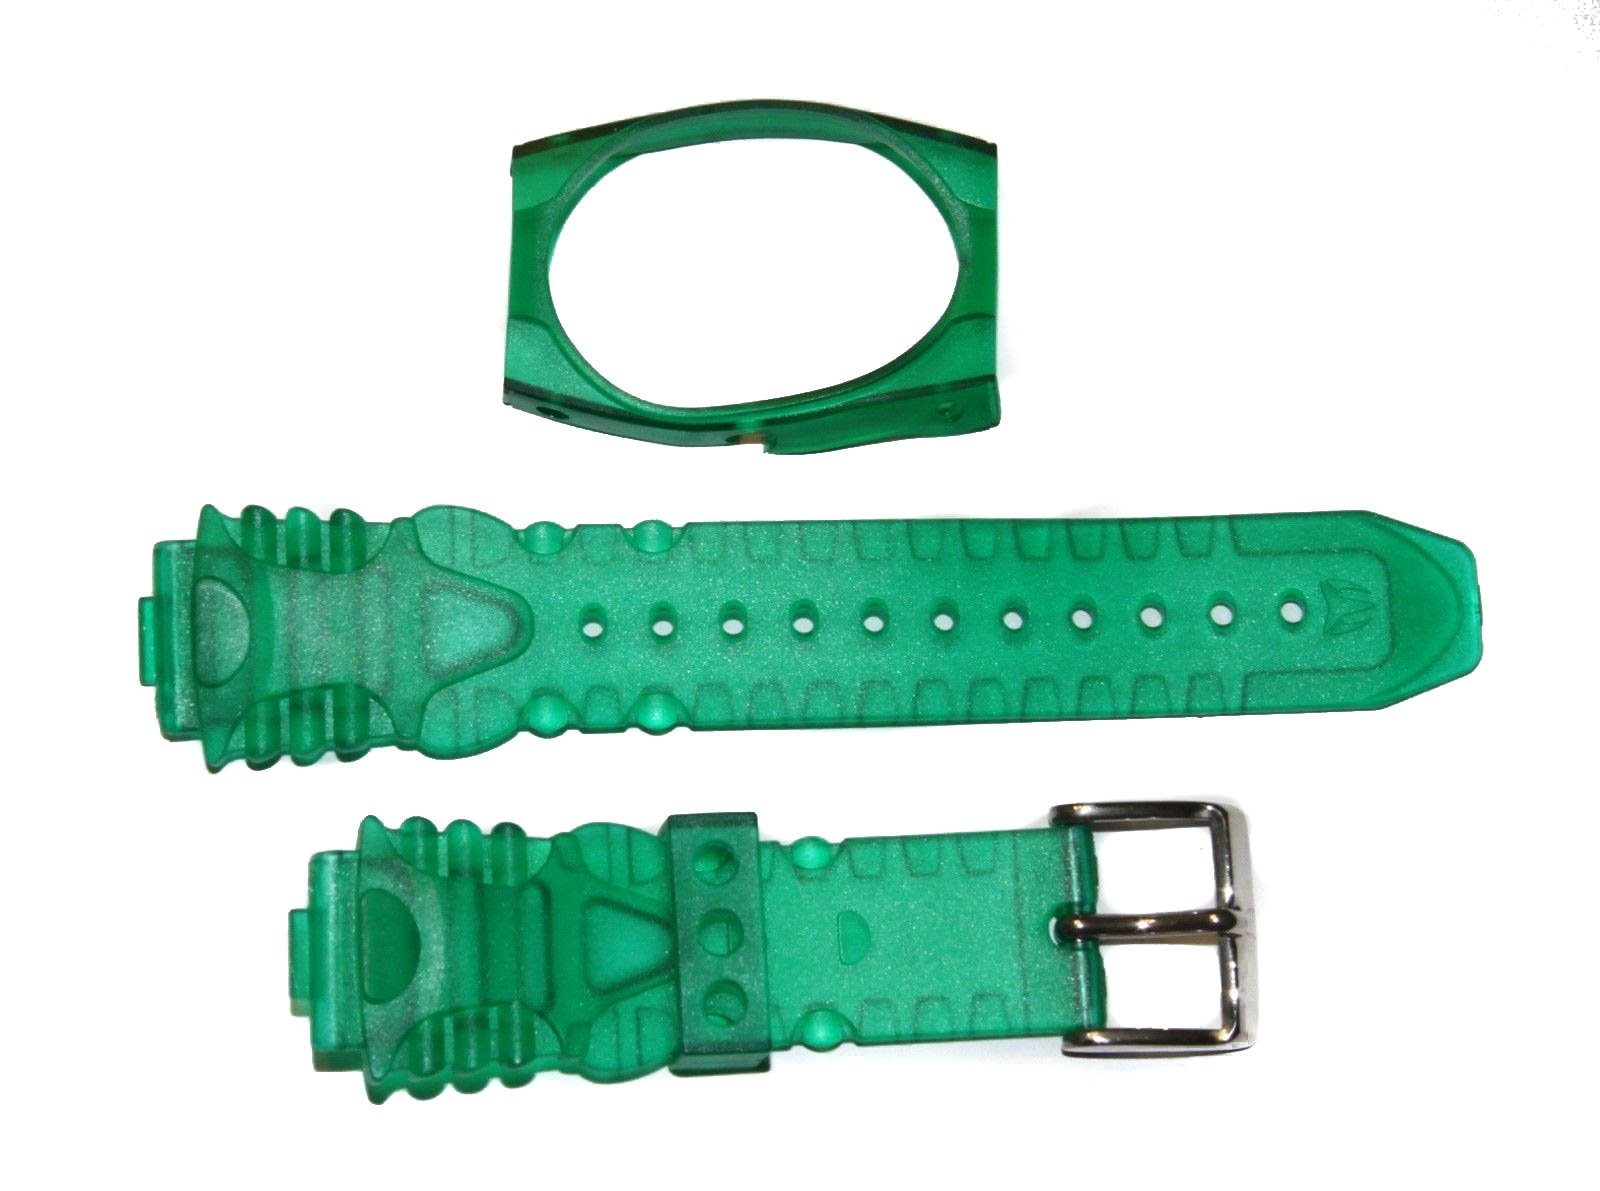 TechnoMarine 1034 17MM Gel Plastic Watch Strap Band with Cover in Transparent Green & Logo Stainless Buckle by Technomarine